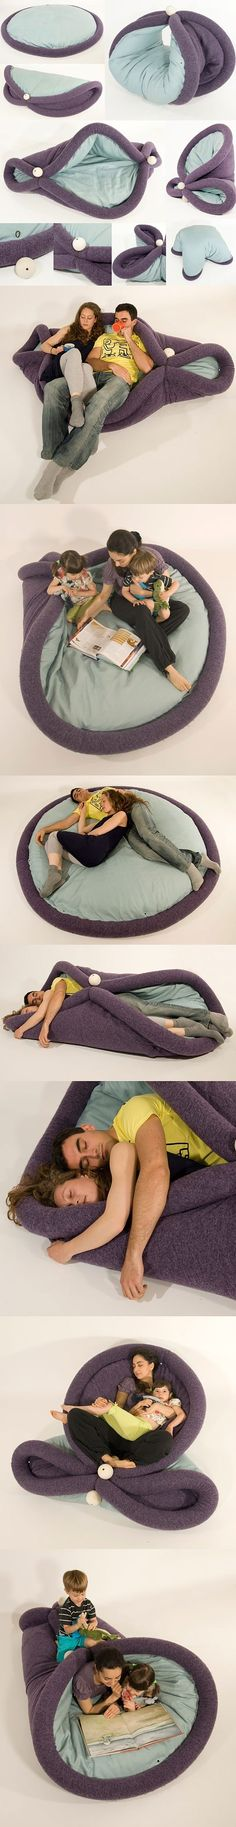 transformable pad for lazy living... love it